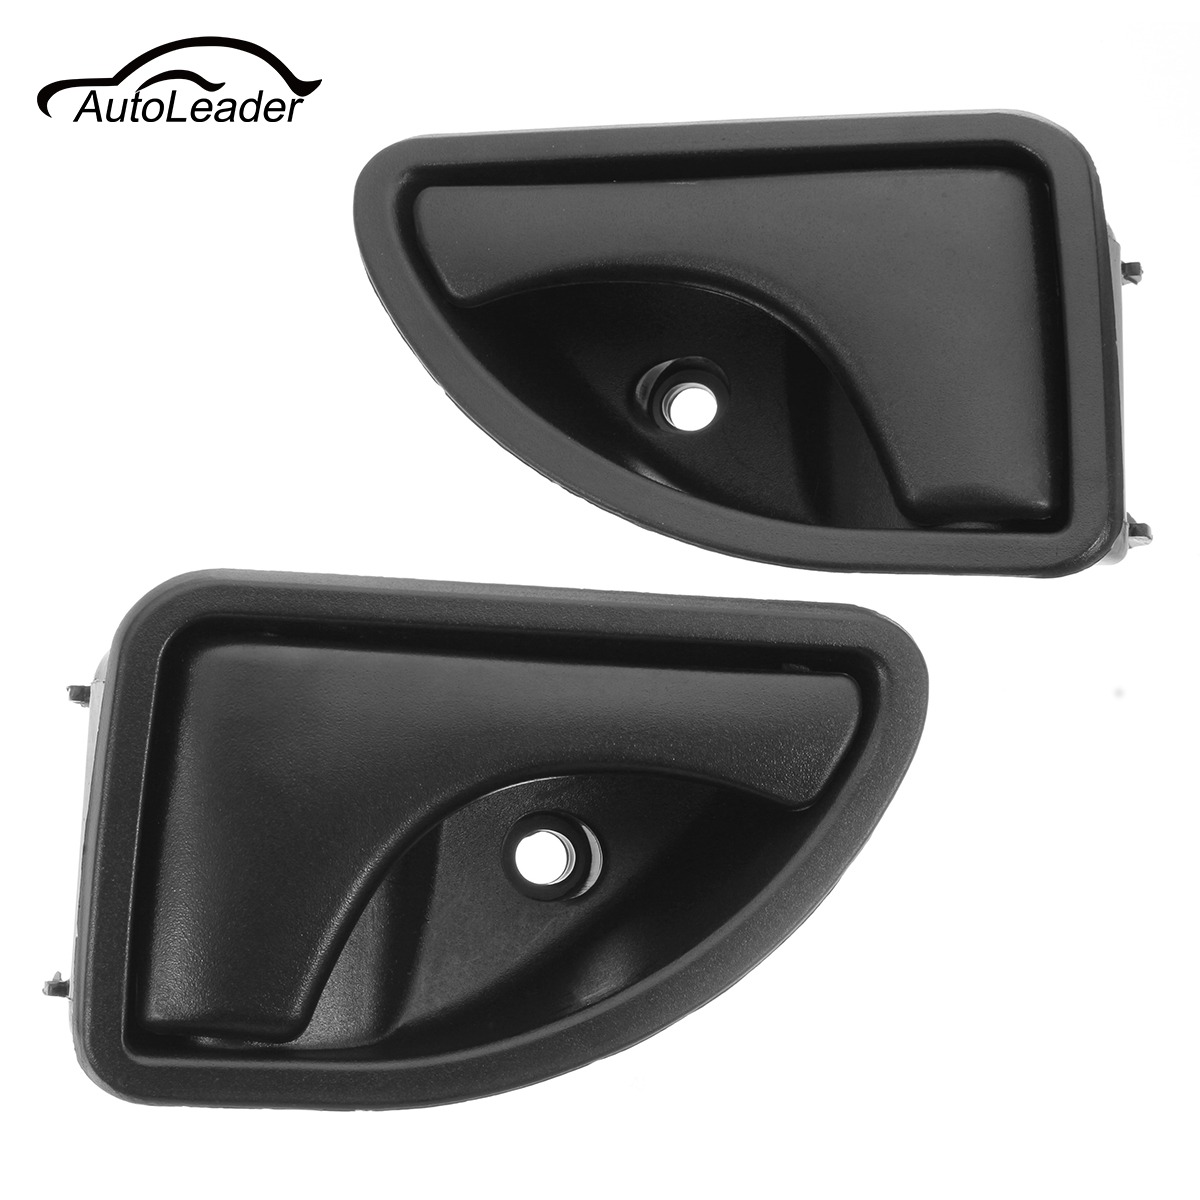 1pc Left/Right Interior Door Handle Front Left Right For Renault Twingo Kangoo 8200247802 8200259376